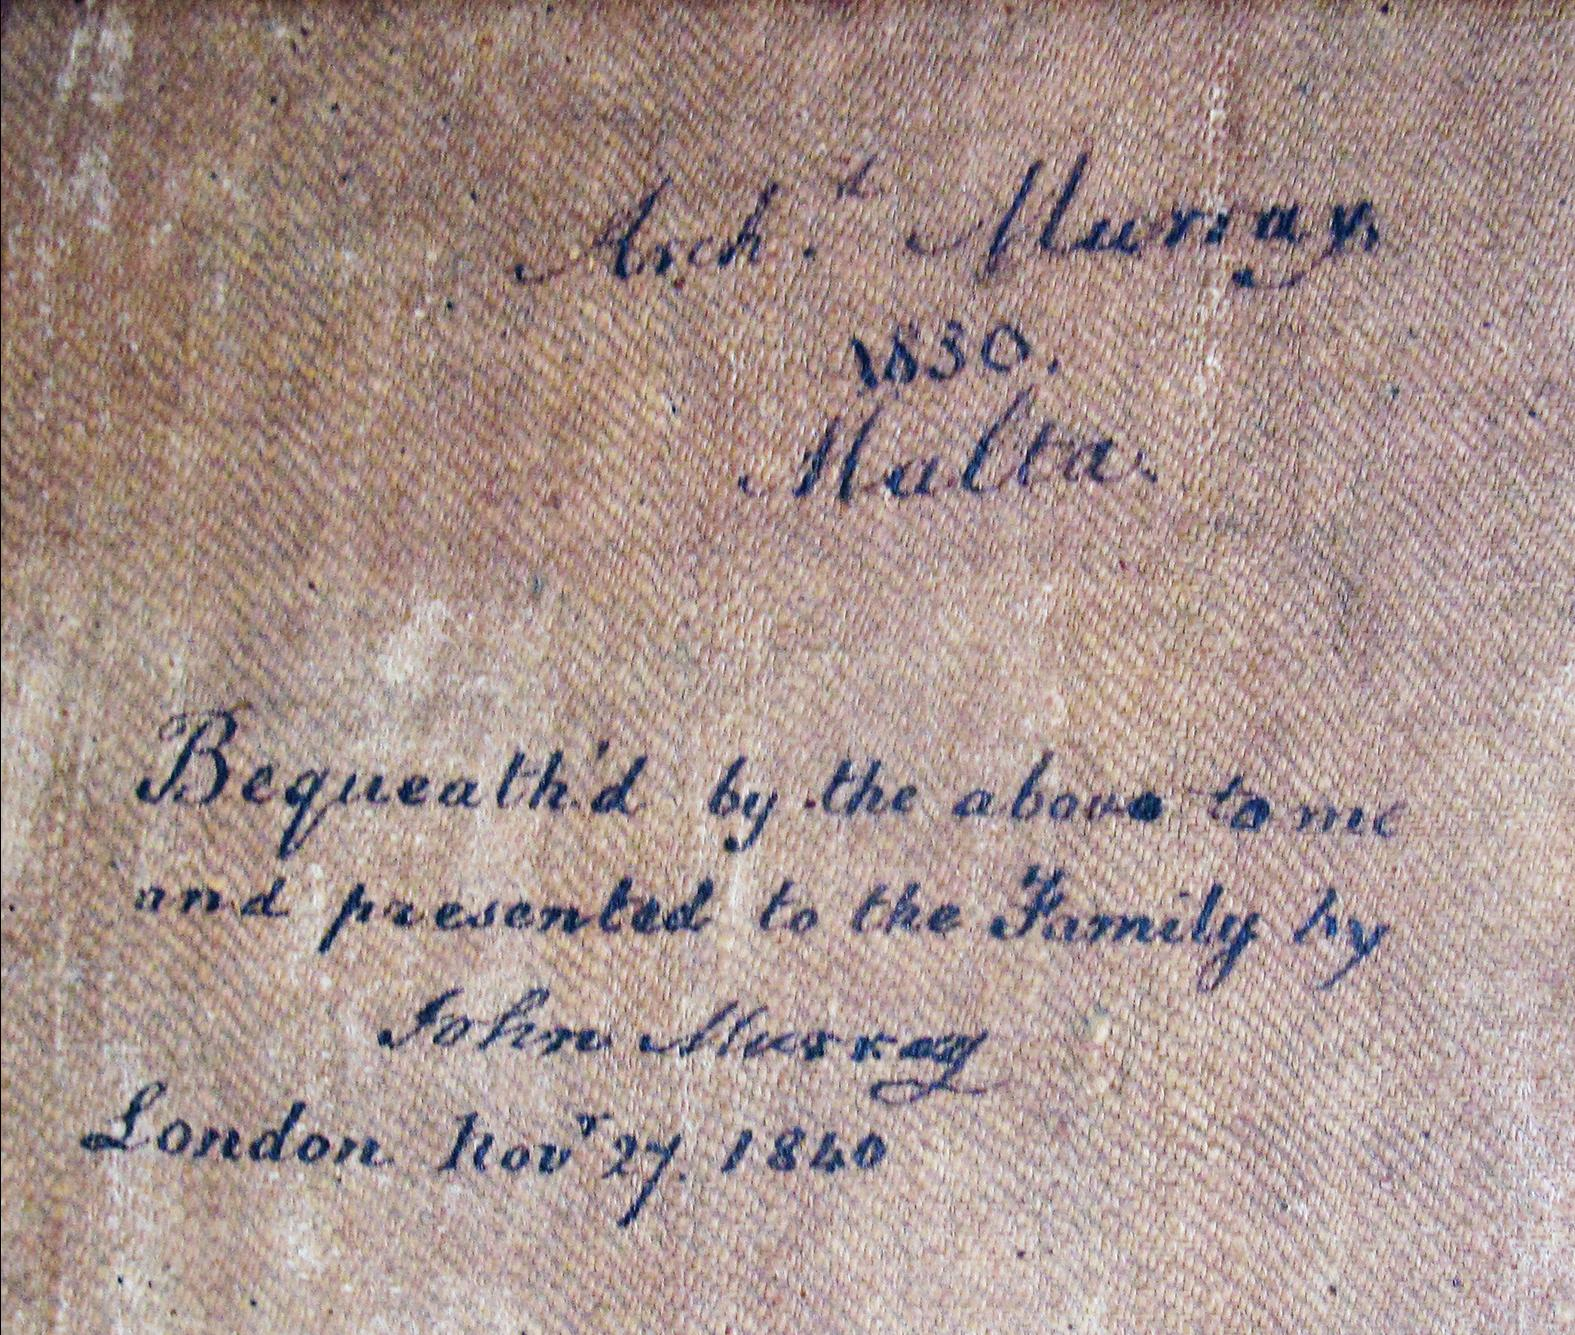 The text on the rear of Portrait of Archibald Murray.